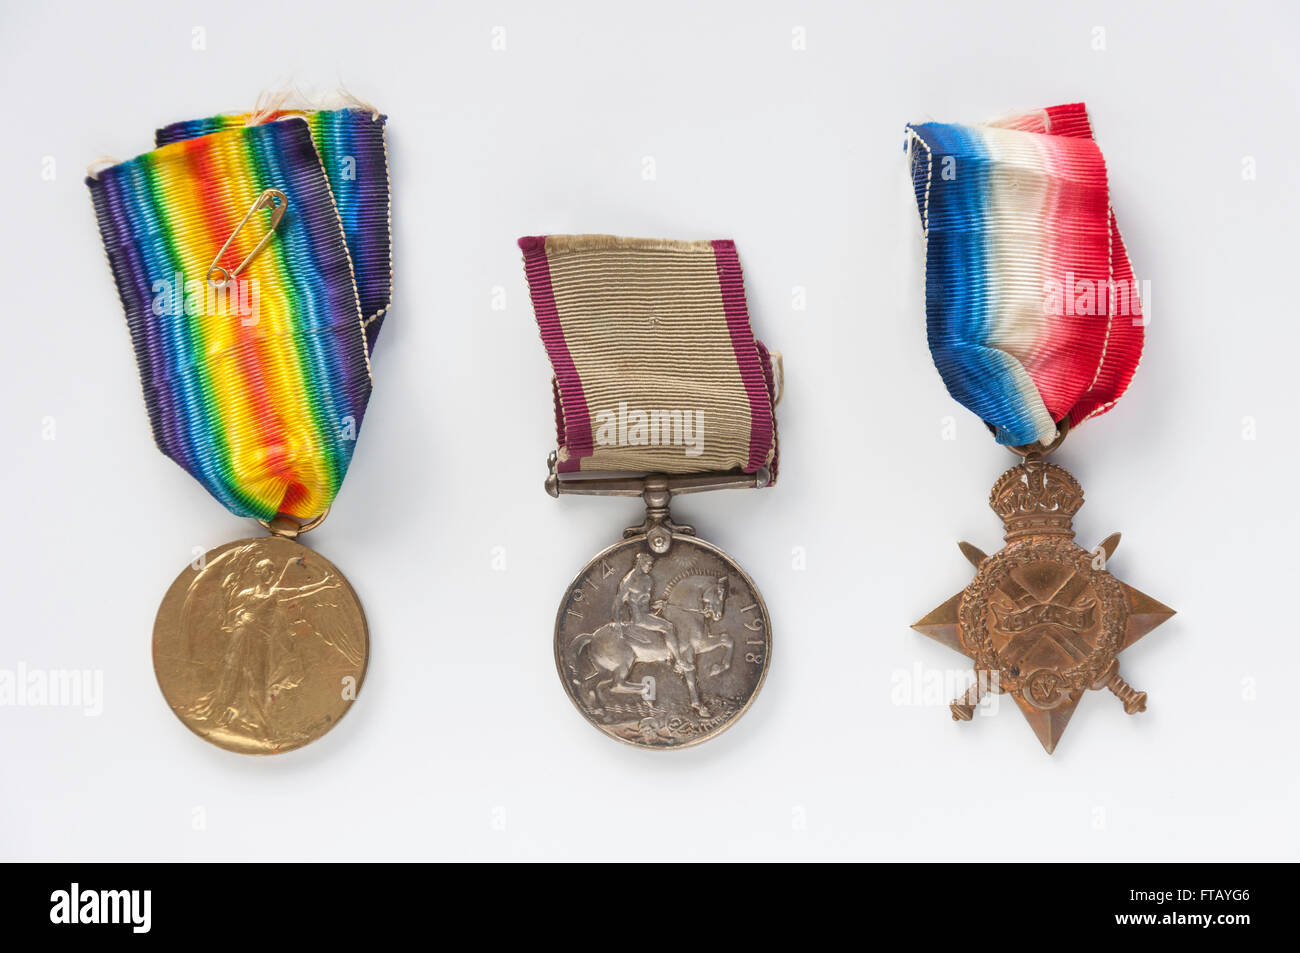 New Zealand World War I infantry medals with ribbons, Christchurch, Canterbury Province, New Zealand - Stock Image